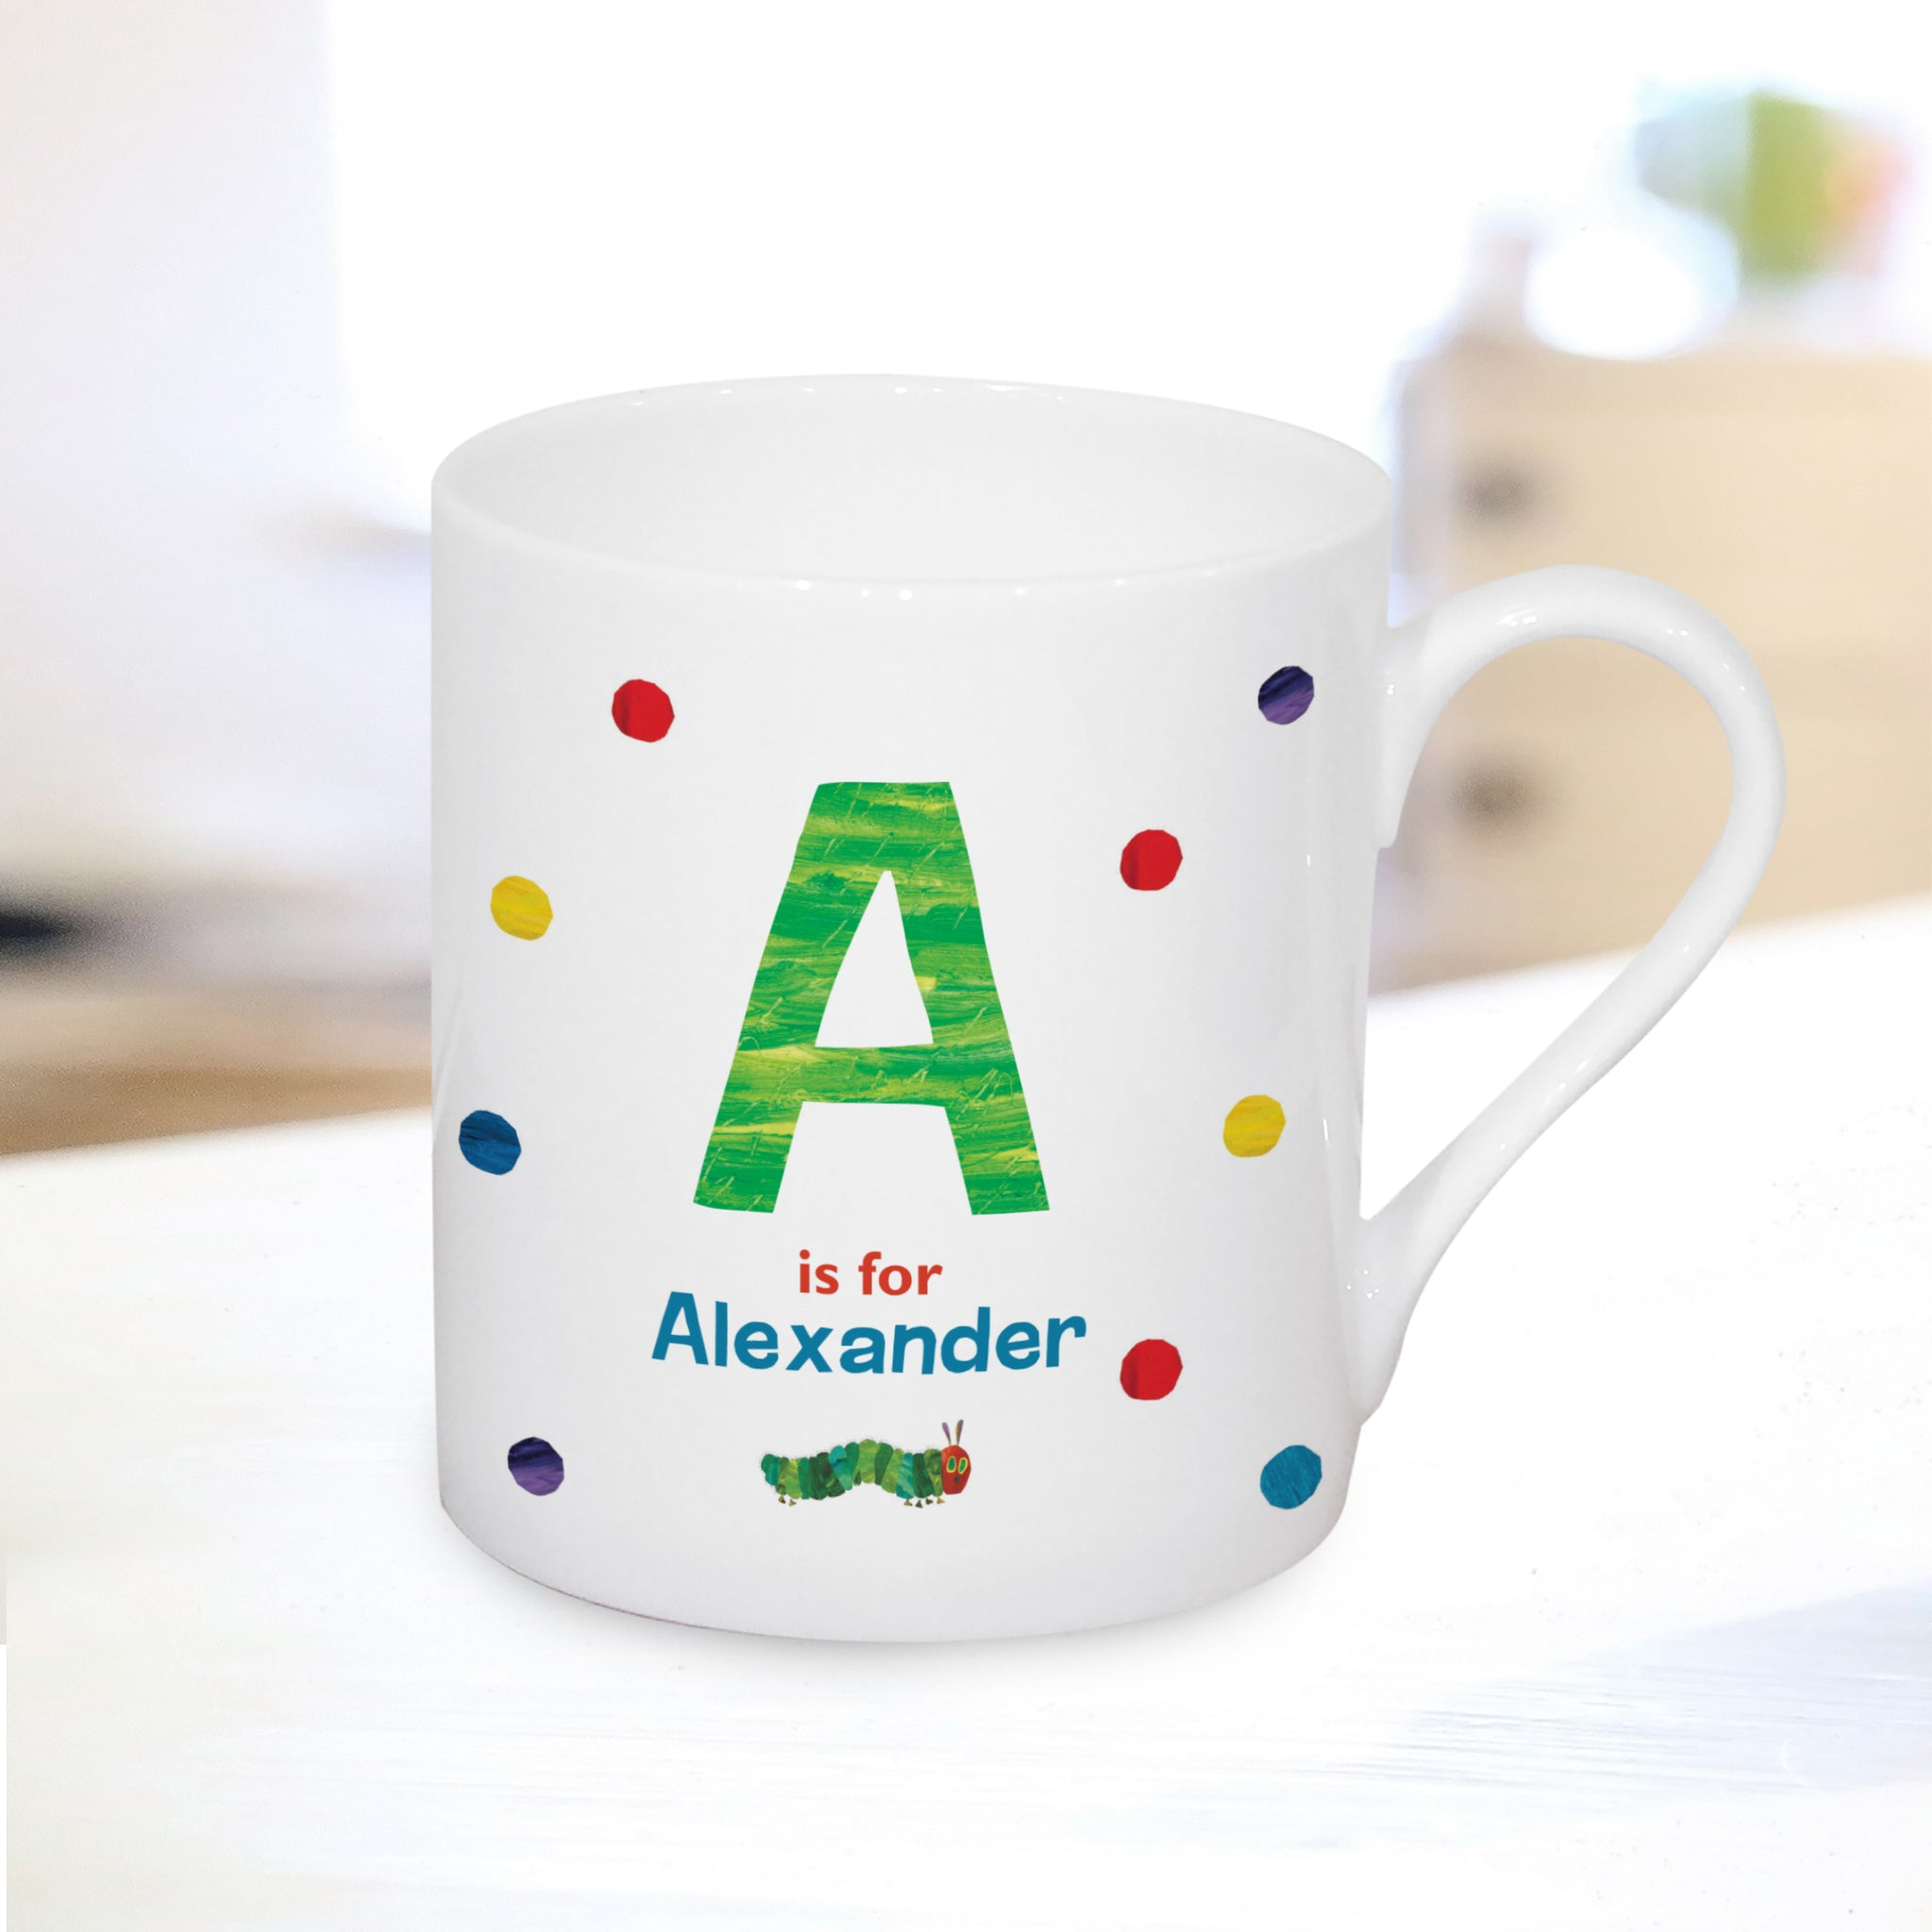 The Very Hungry Caterpillar Spotty Initial Balmoral Mug